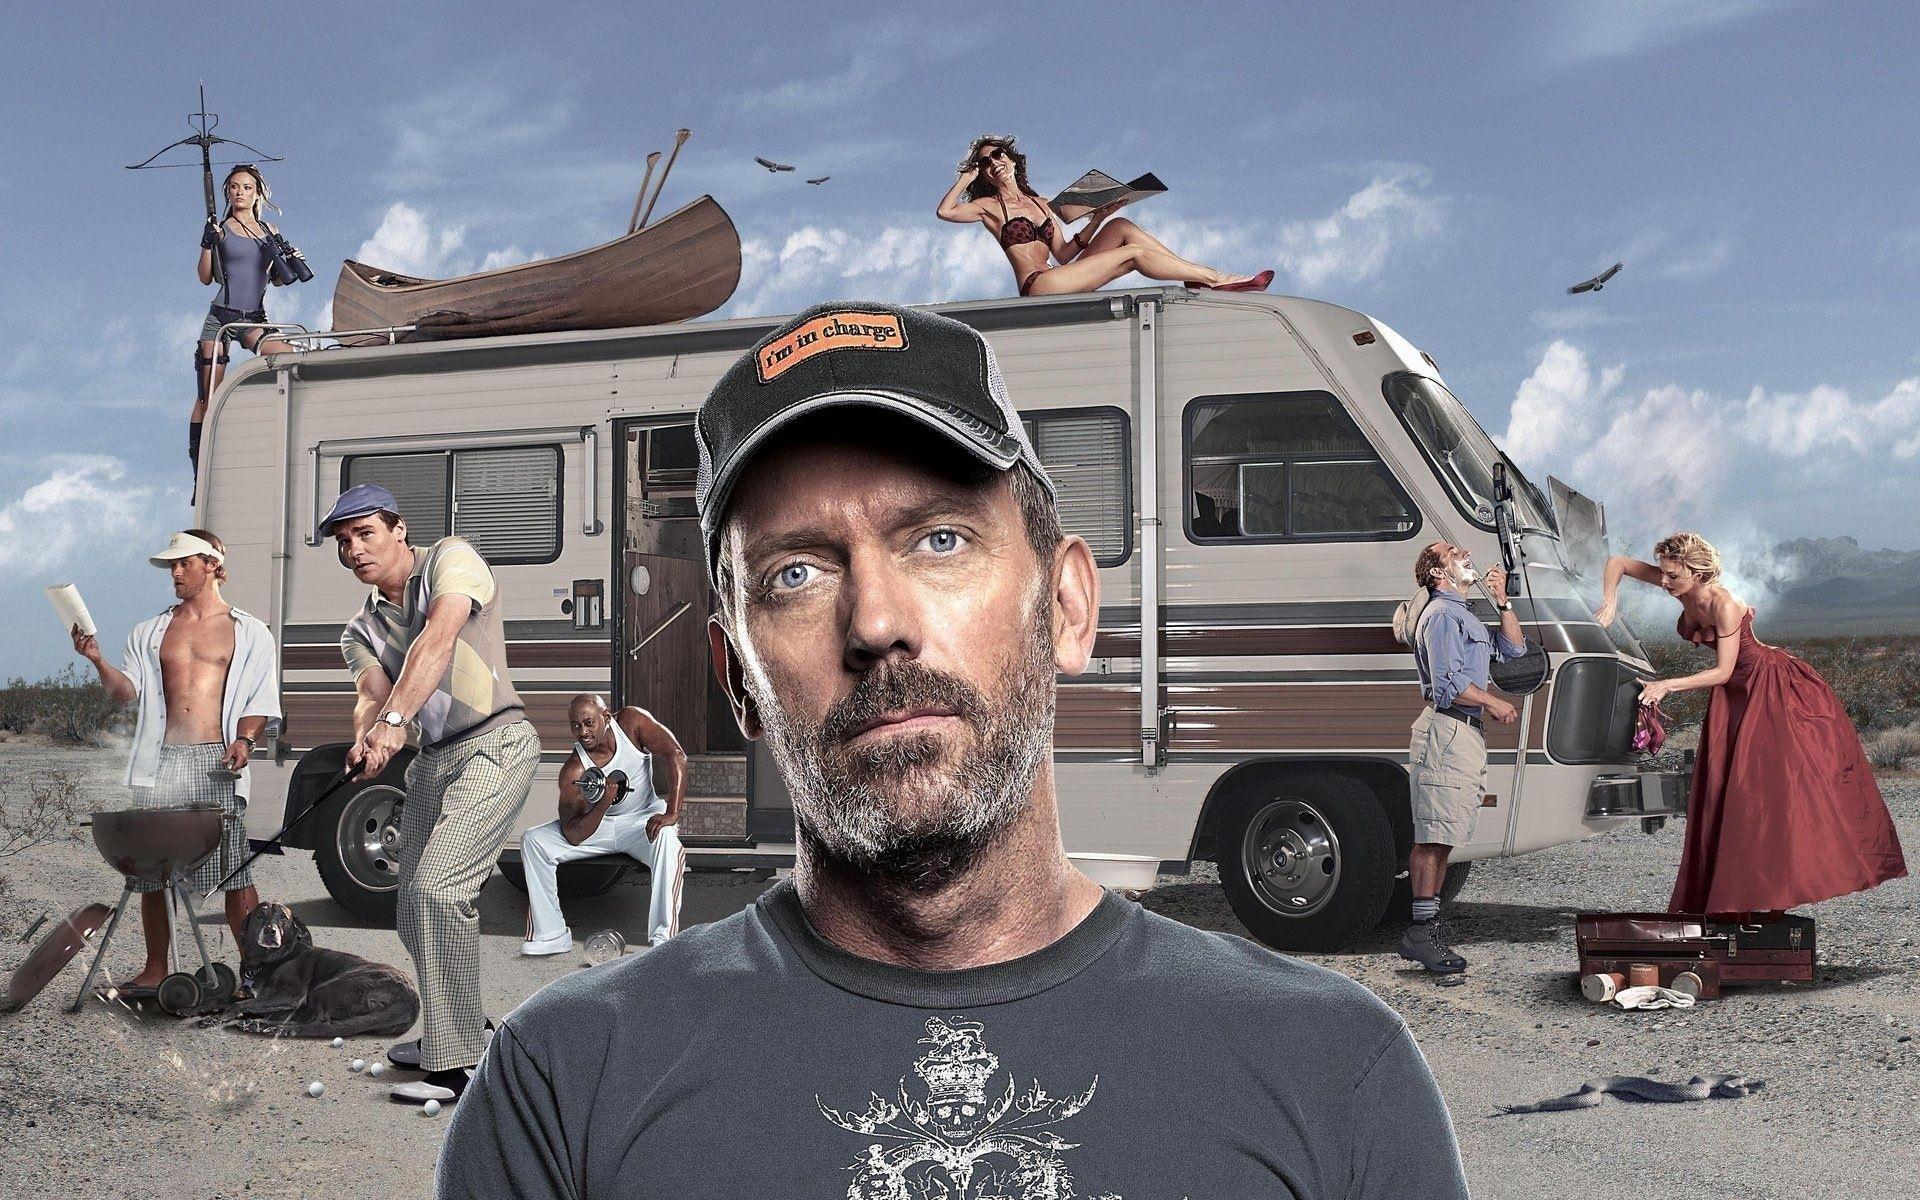 Dr House Wallpapers - Full HD wallpaper search